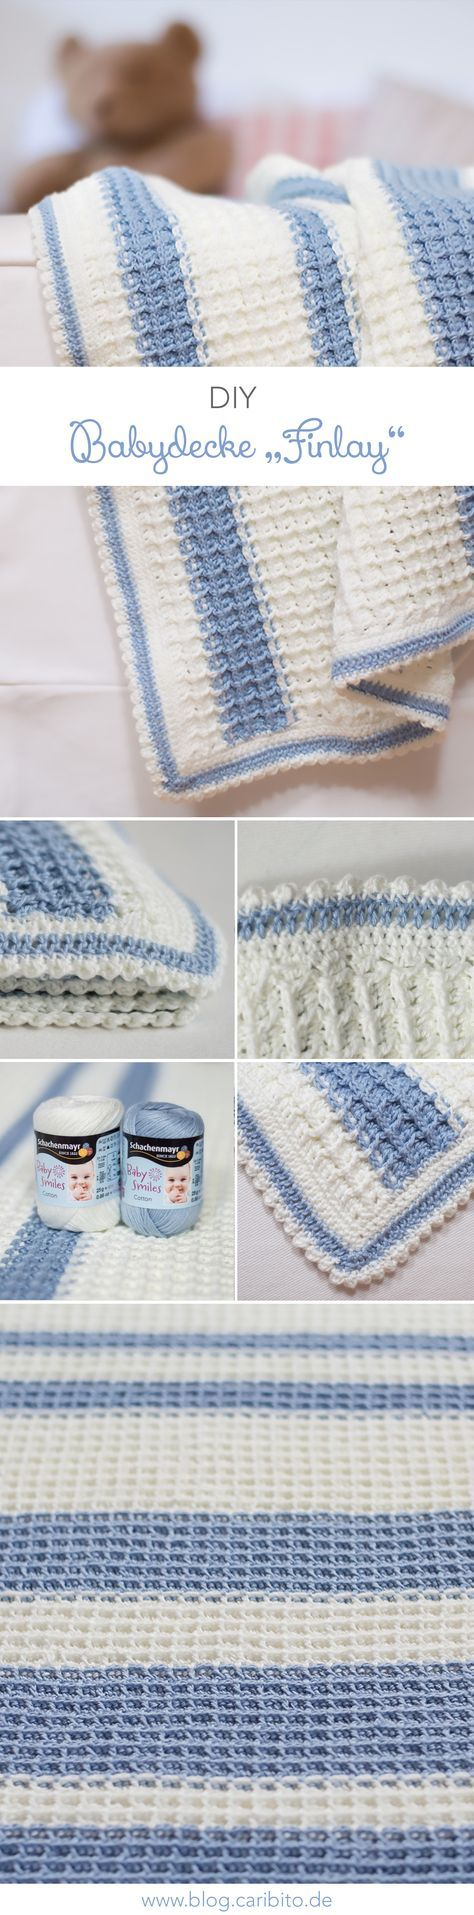 12 best Stricken/Häkeln images on Pinterest | Free knitting, Hand ...